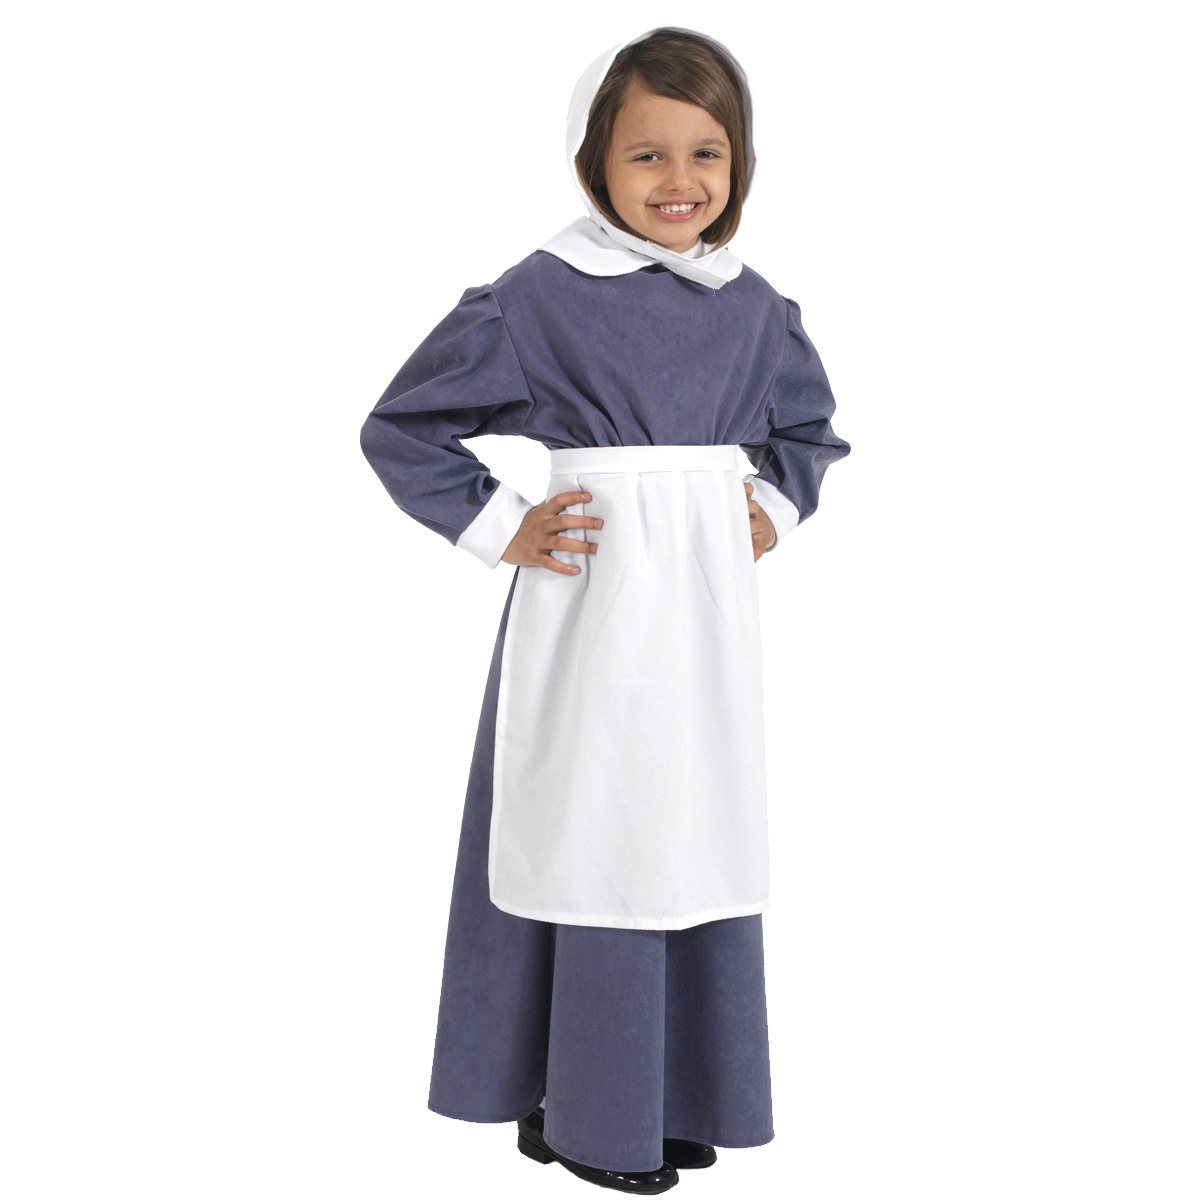 White pinafore apron costume - Amazon Com White Apron Costume For Kids One Size Includes Apron Only Toys Games